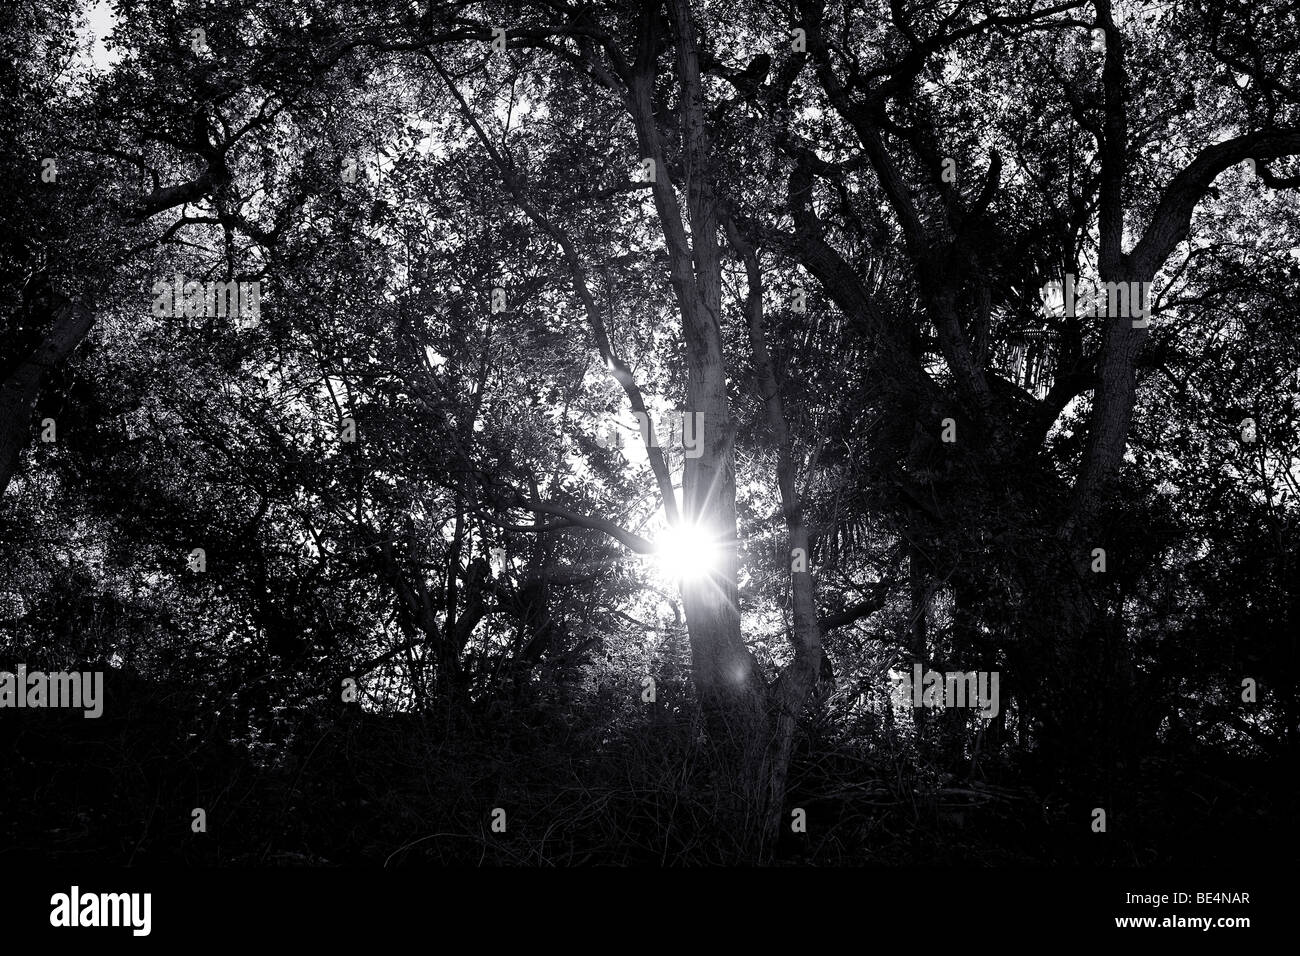 The sun bursting through trees silhouetted against the sky in 'Pasadena,' California.' - Stock Image